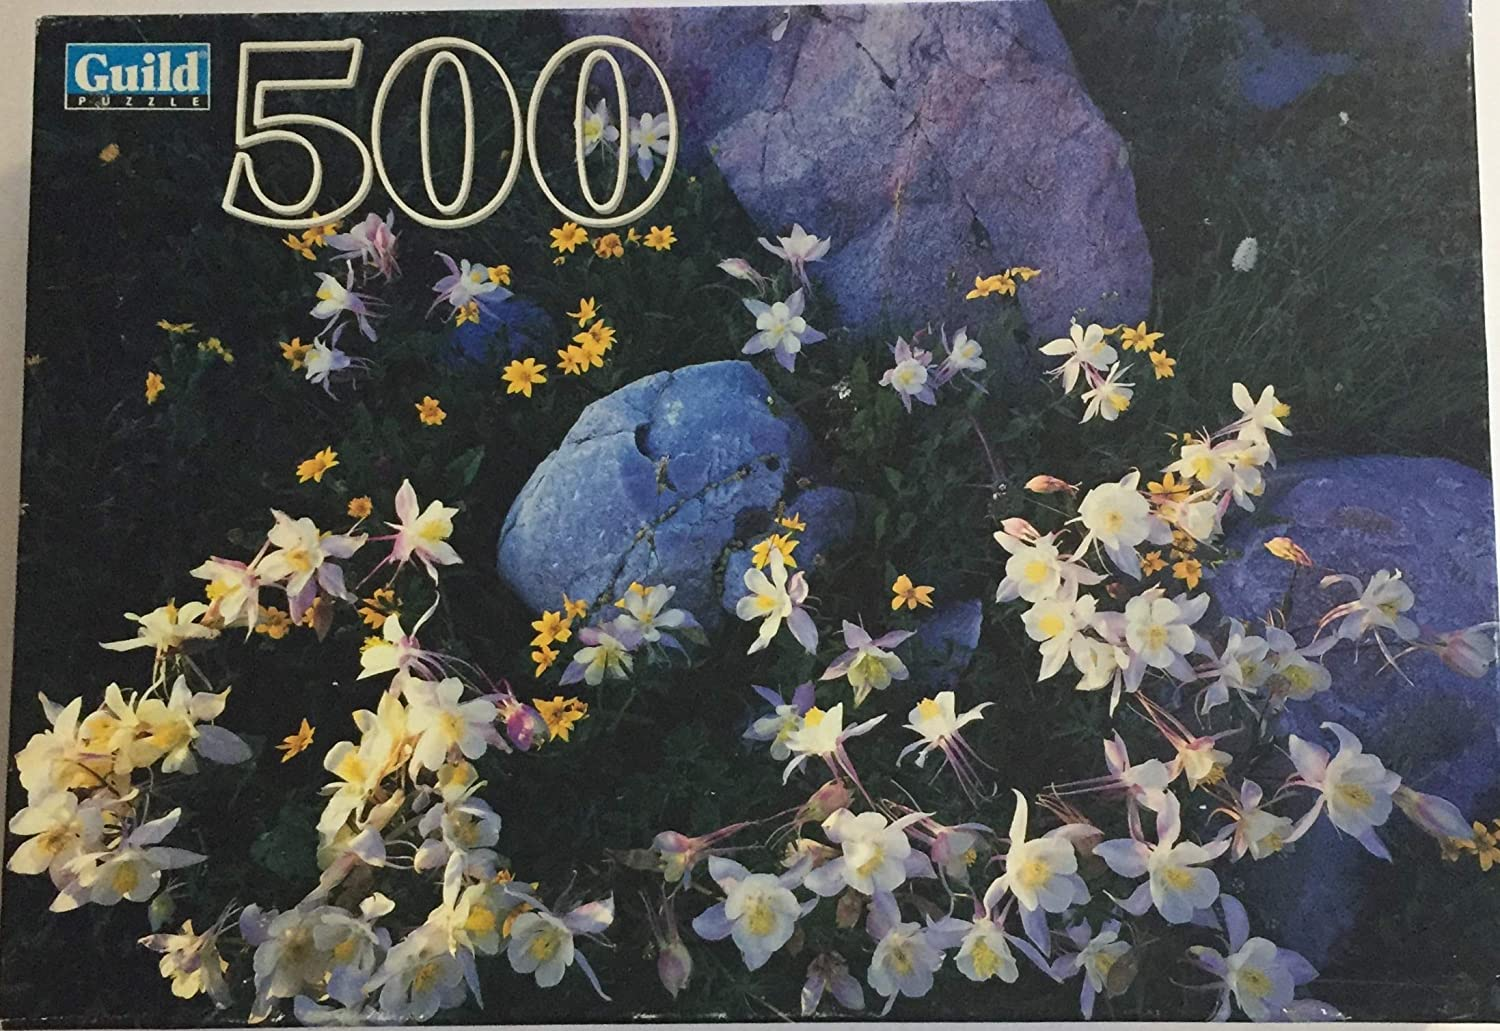 Guild 550 Piece Puzzle - - - Old Wharf Area, Bergen, Germany 048ab5